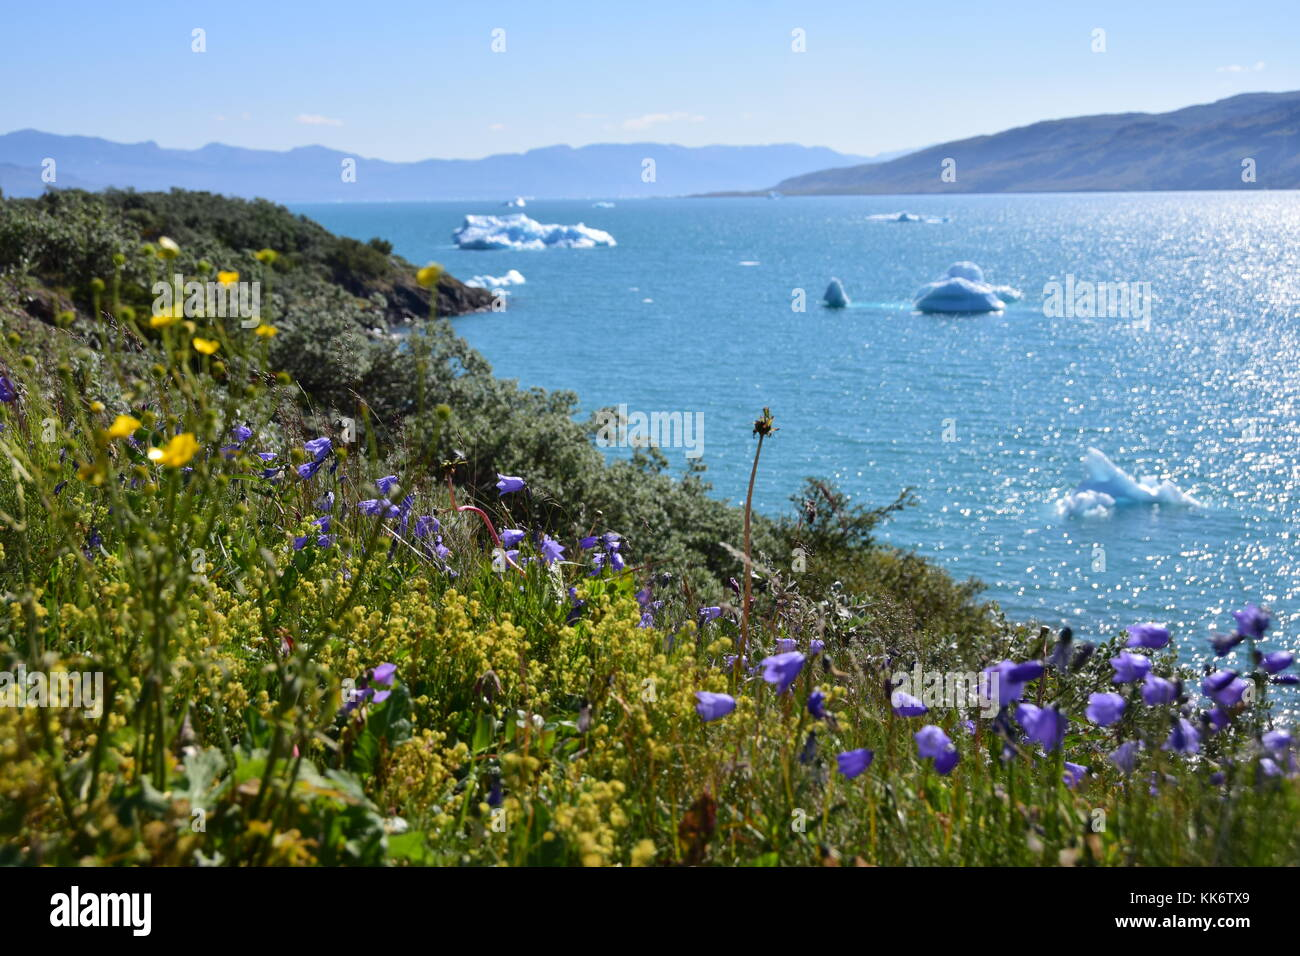 Wild flowers and ice flows Narsarsuaq, Greenland - Stock Image